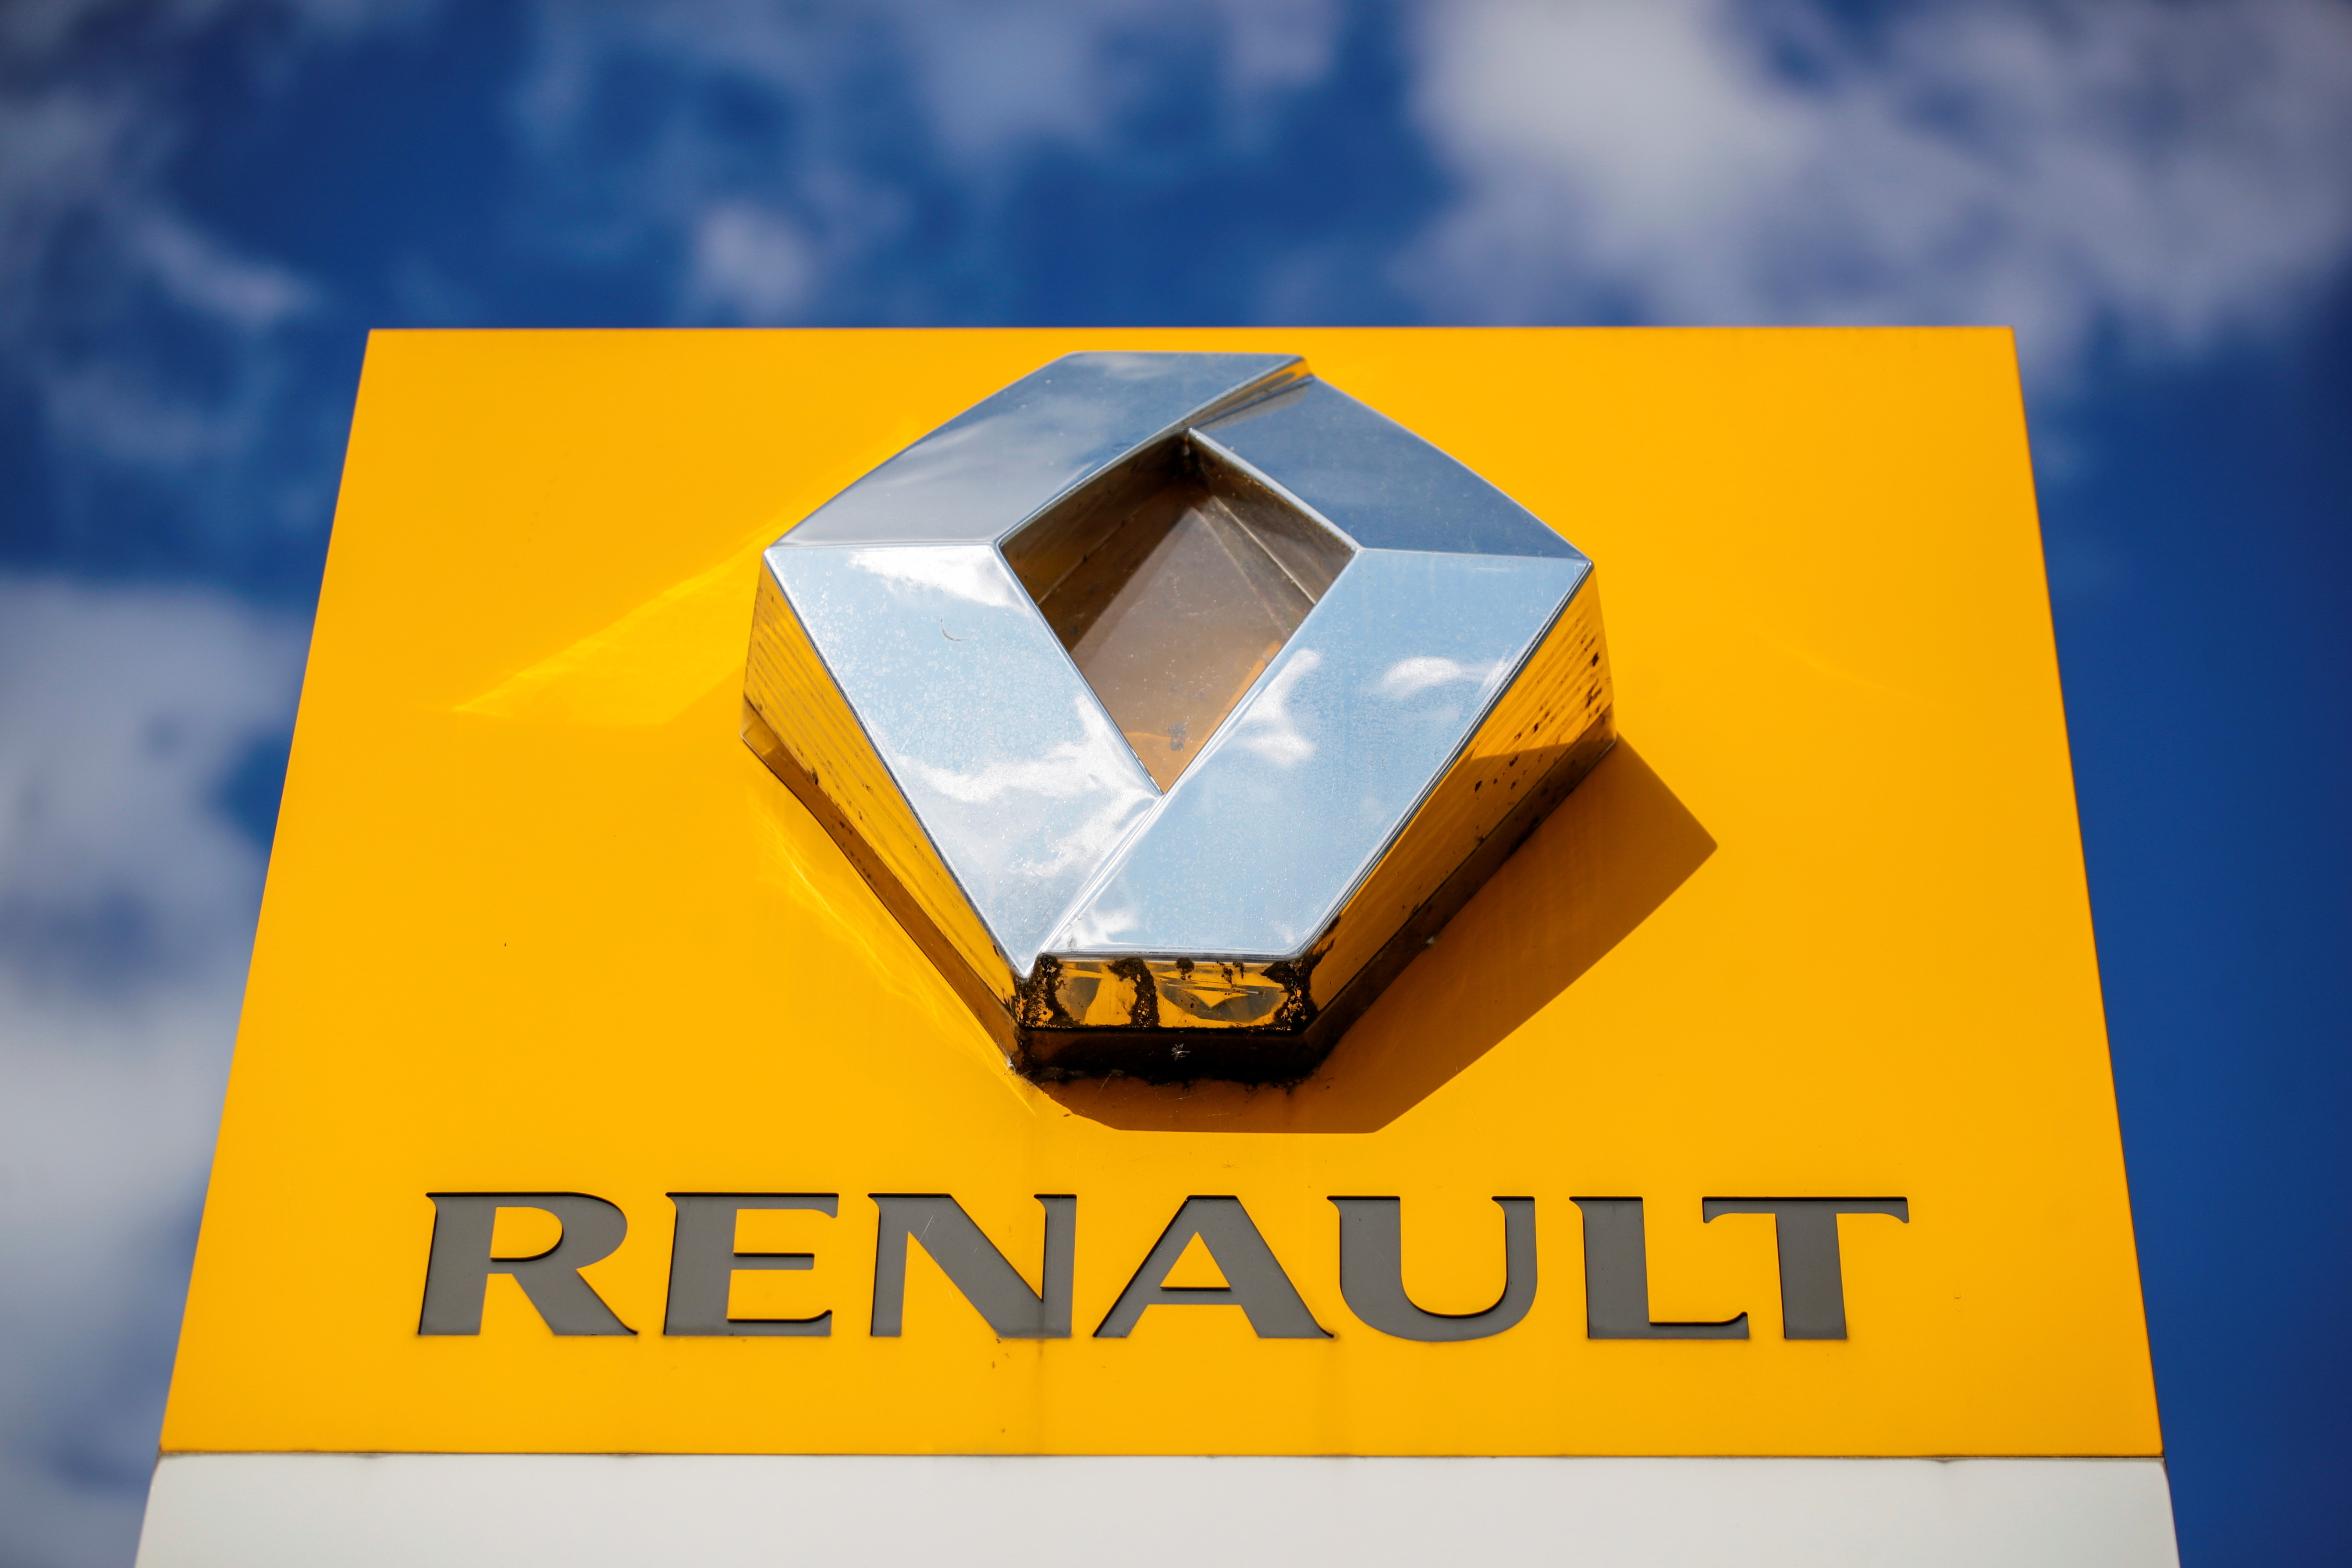 The logo of carmaker Renault is seen at a dealership in Paris, France, August 15, 2021. REUTERS/Sarah Meyssonnier